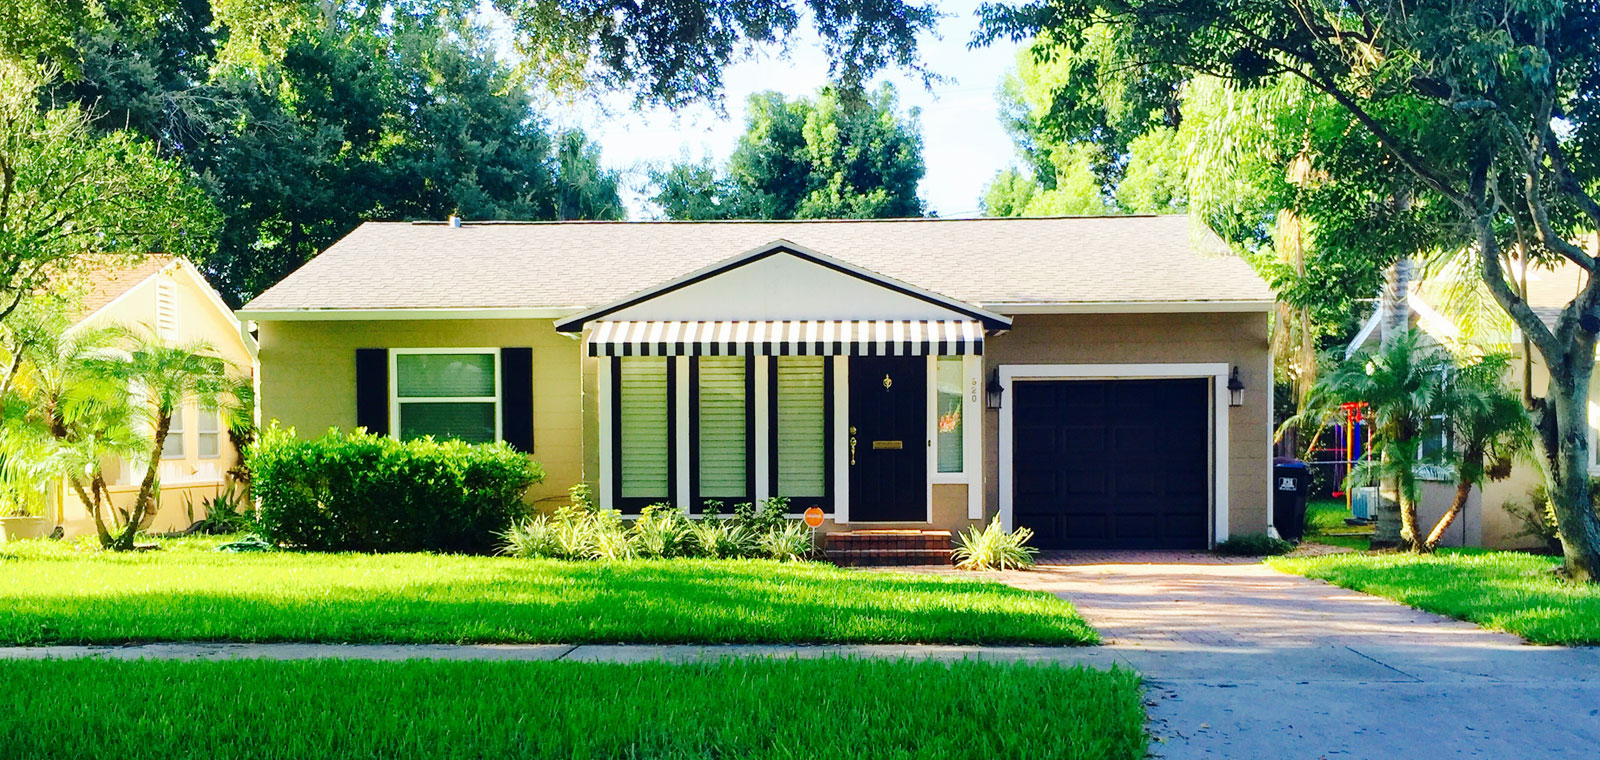 Metro Orlando Real Estate - Chris Quarles Properties